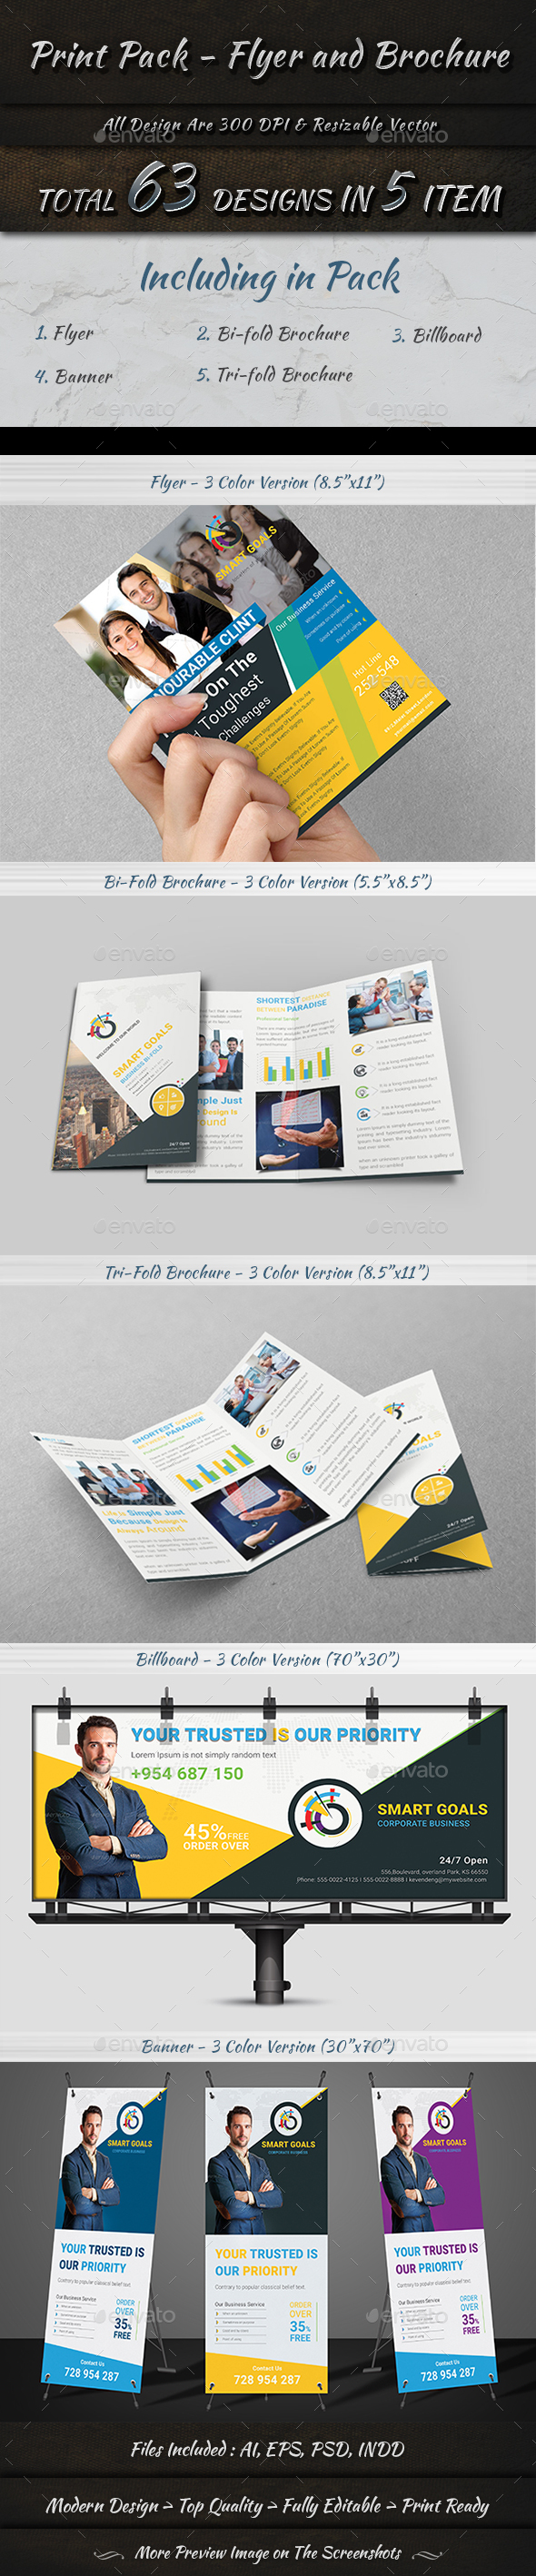 Print Pack - Flyer and Brochure - Print Templates